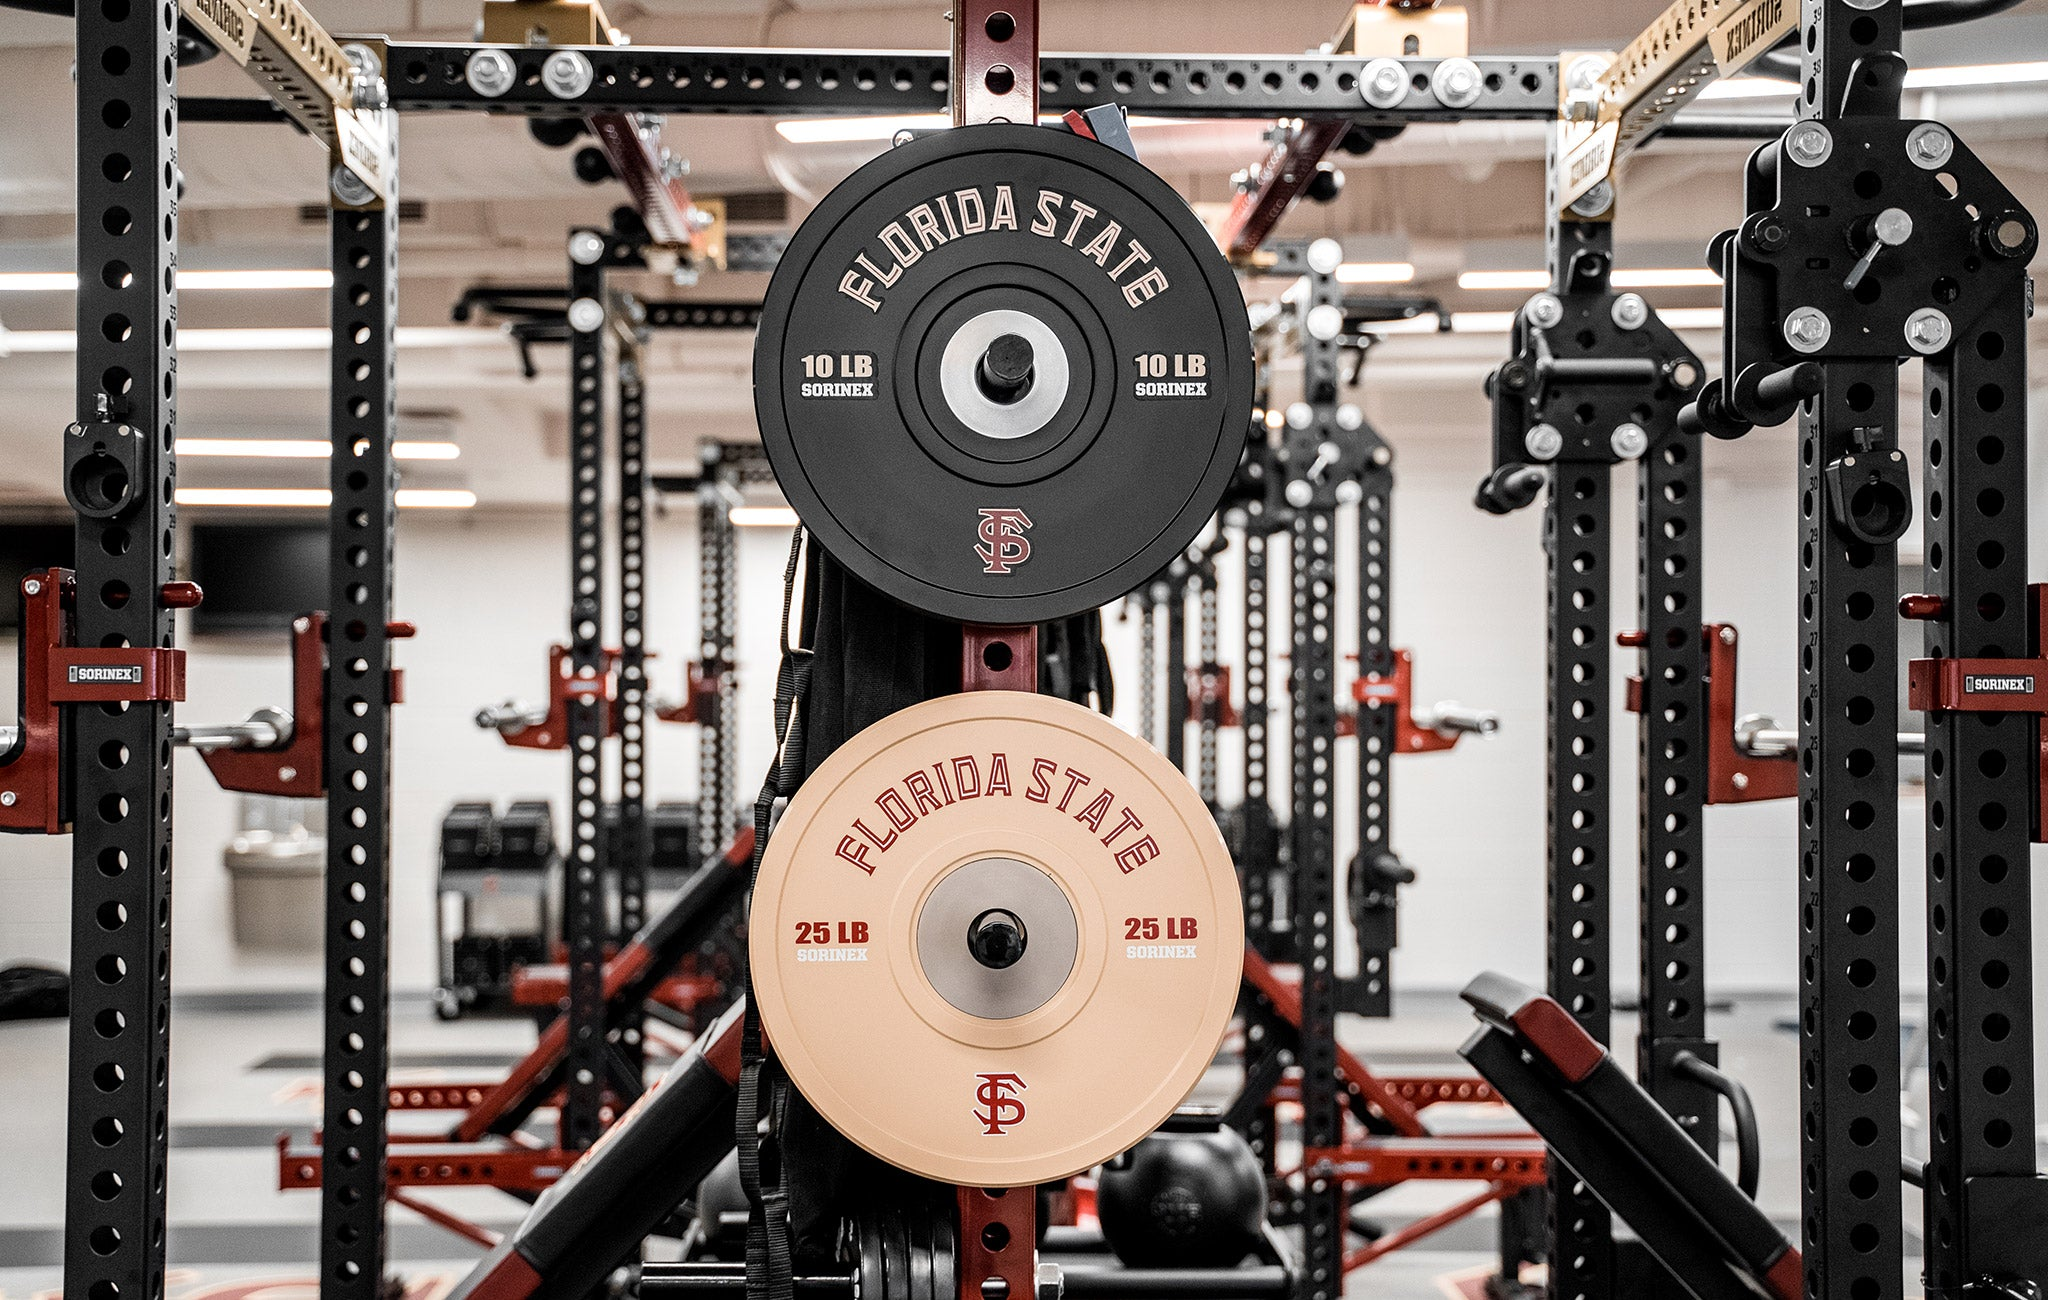 FSU baseball weight room